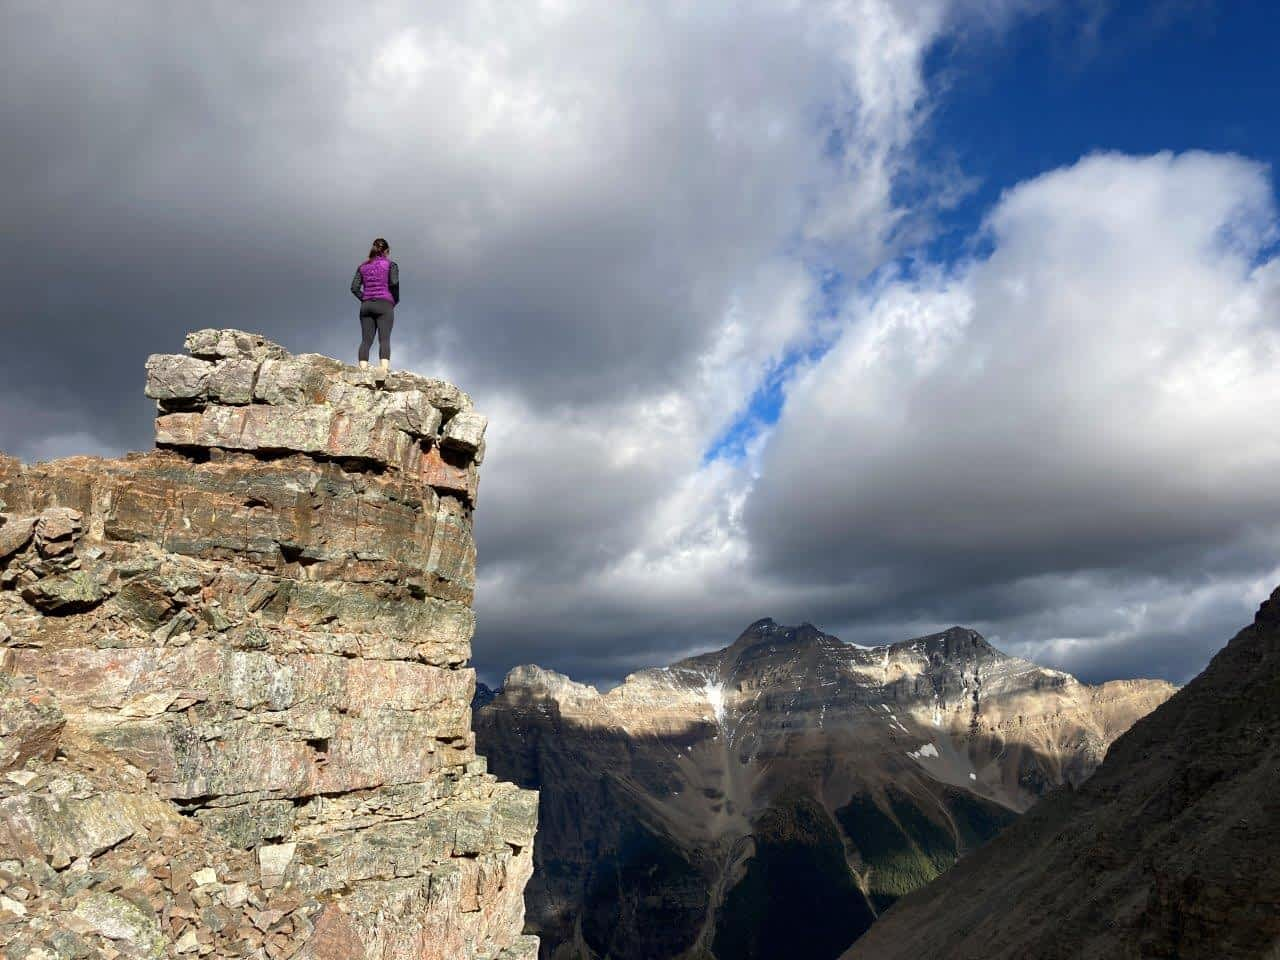 Girl on rock outcropping and mountains in the background